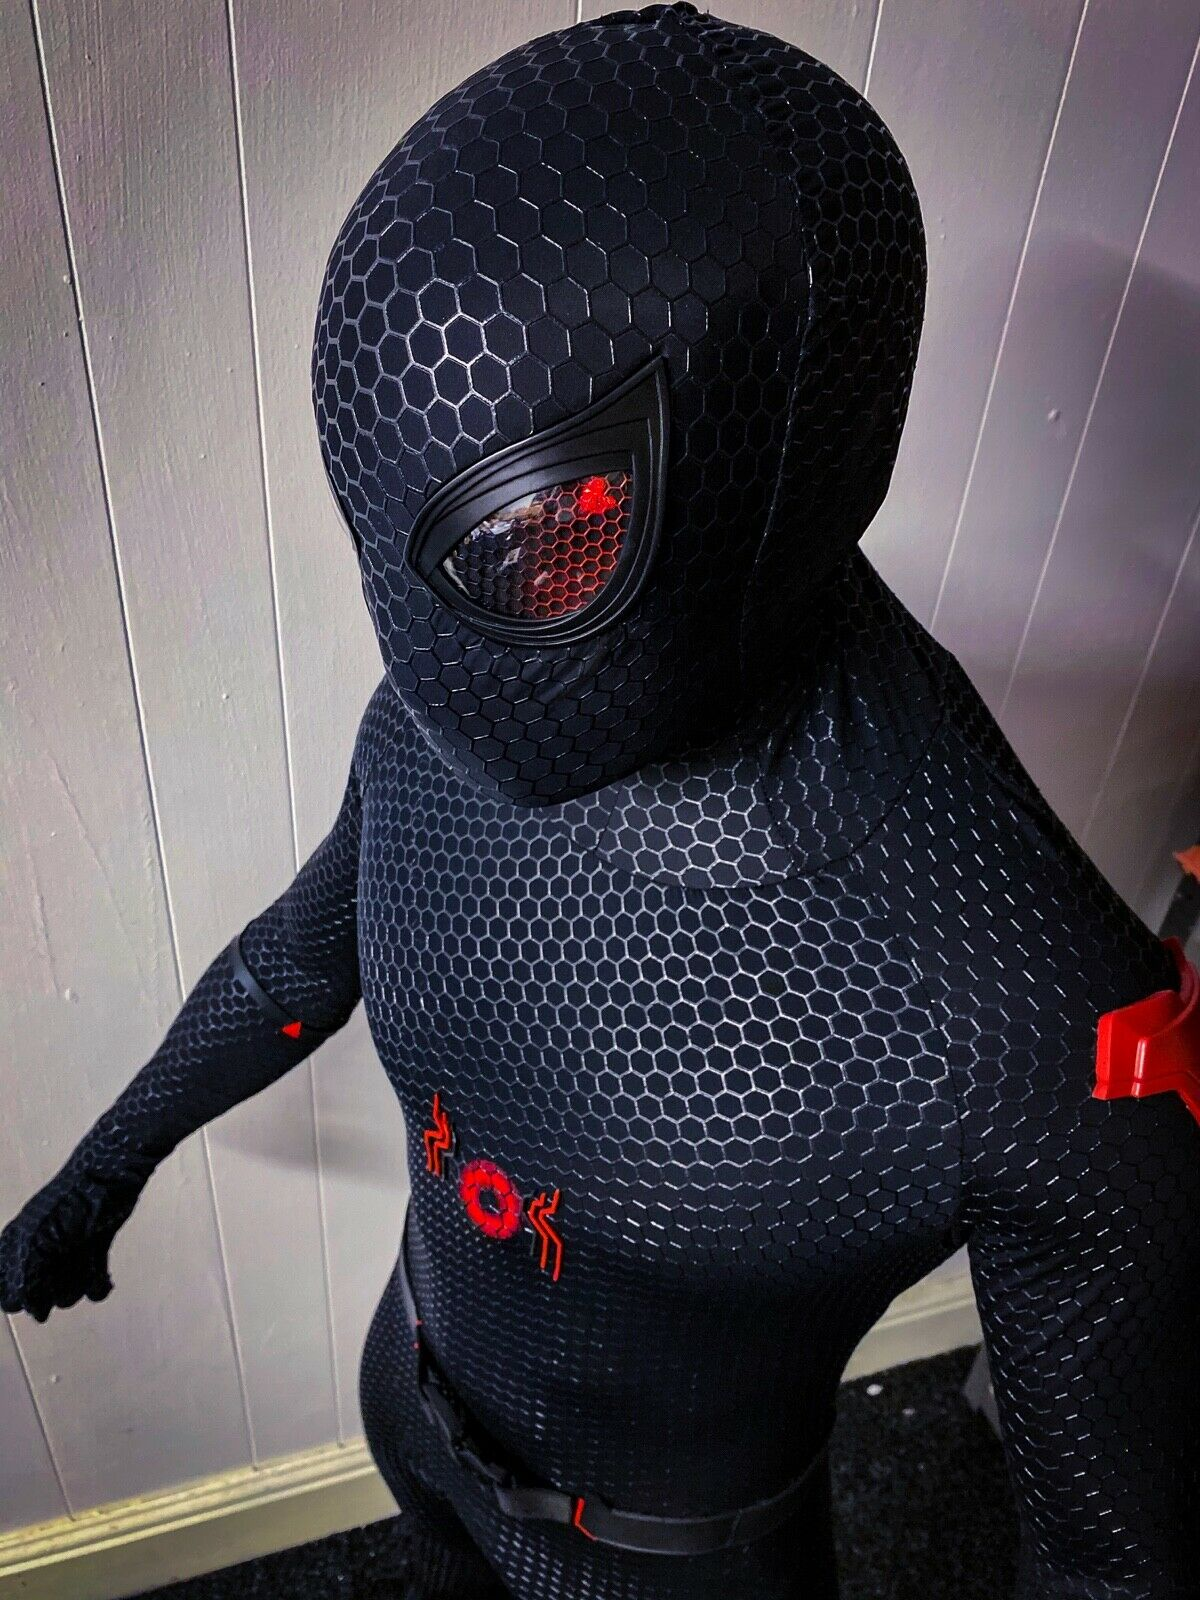 Movie Quality Tactical Stealth Spider-Man Suit (with immediate dispatch)